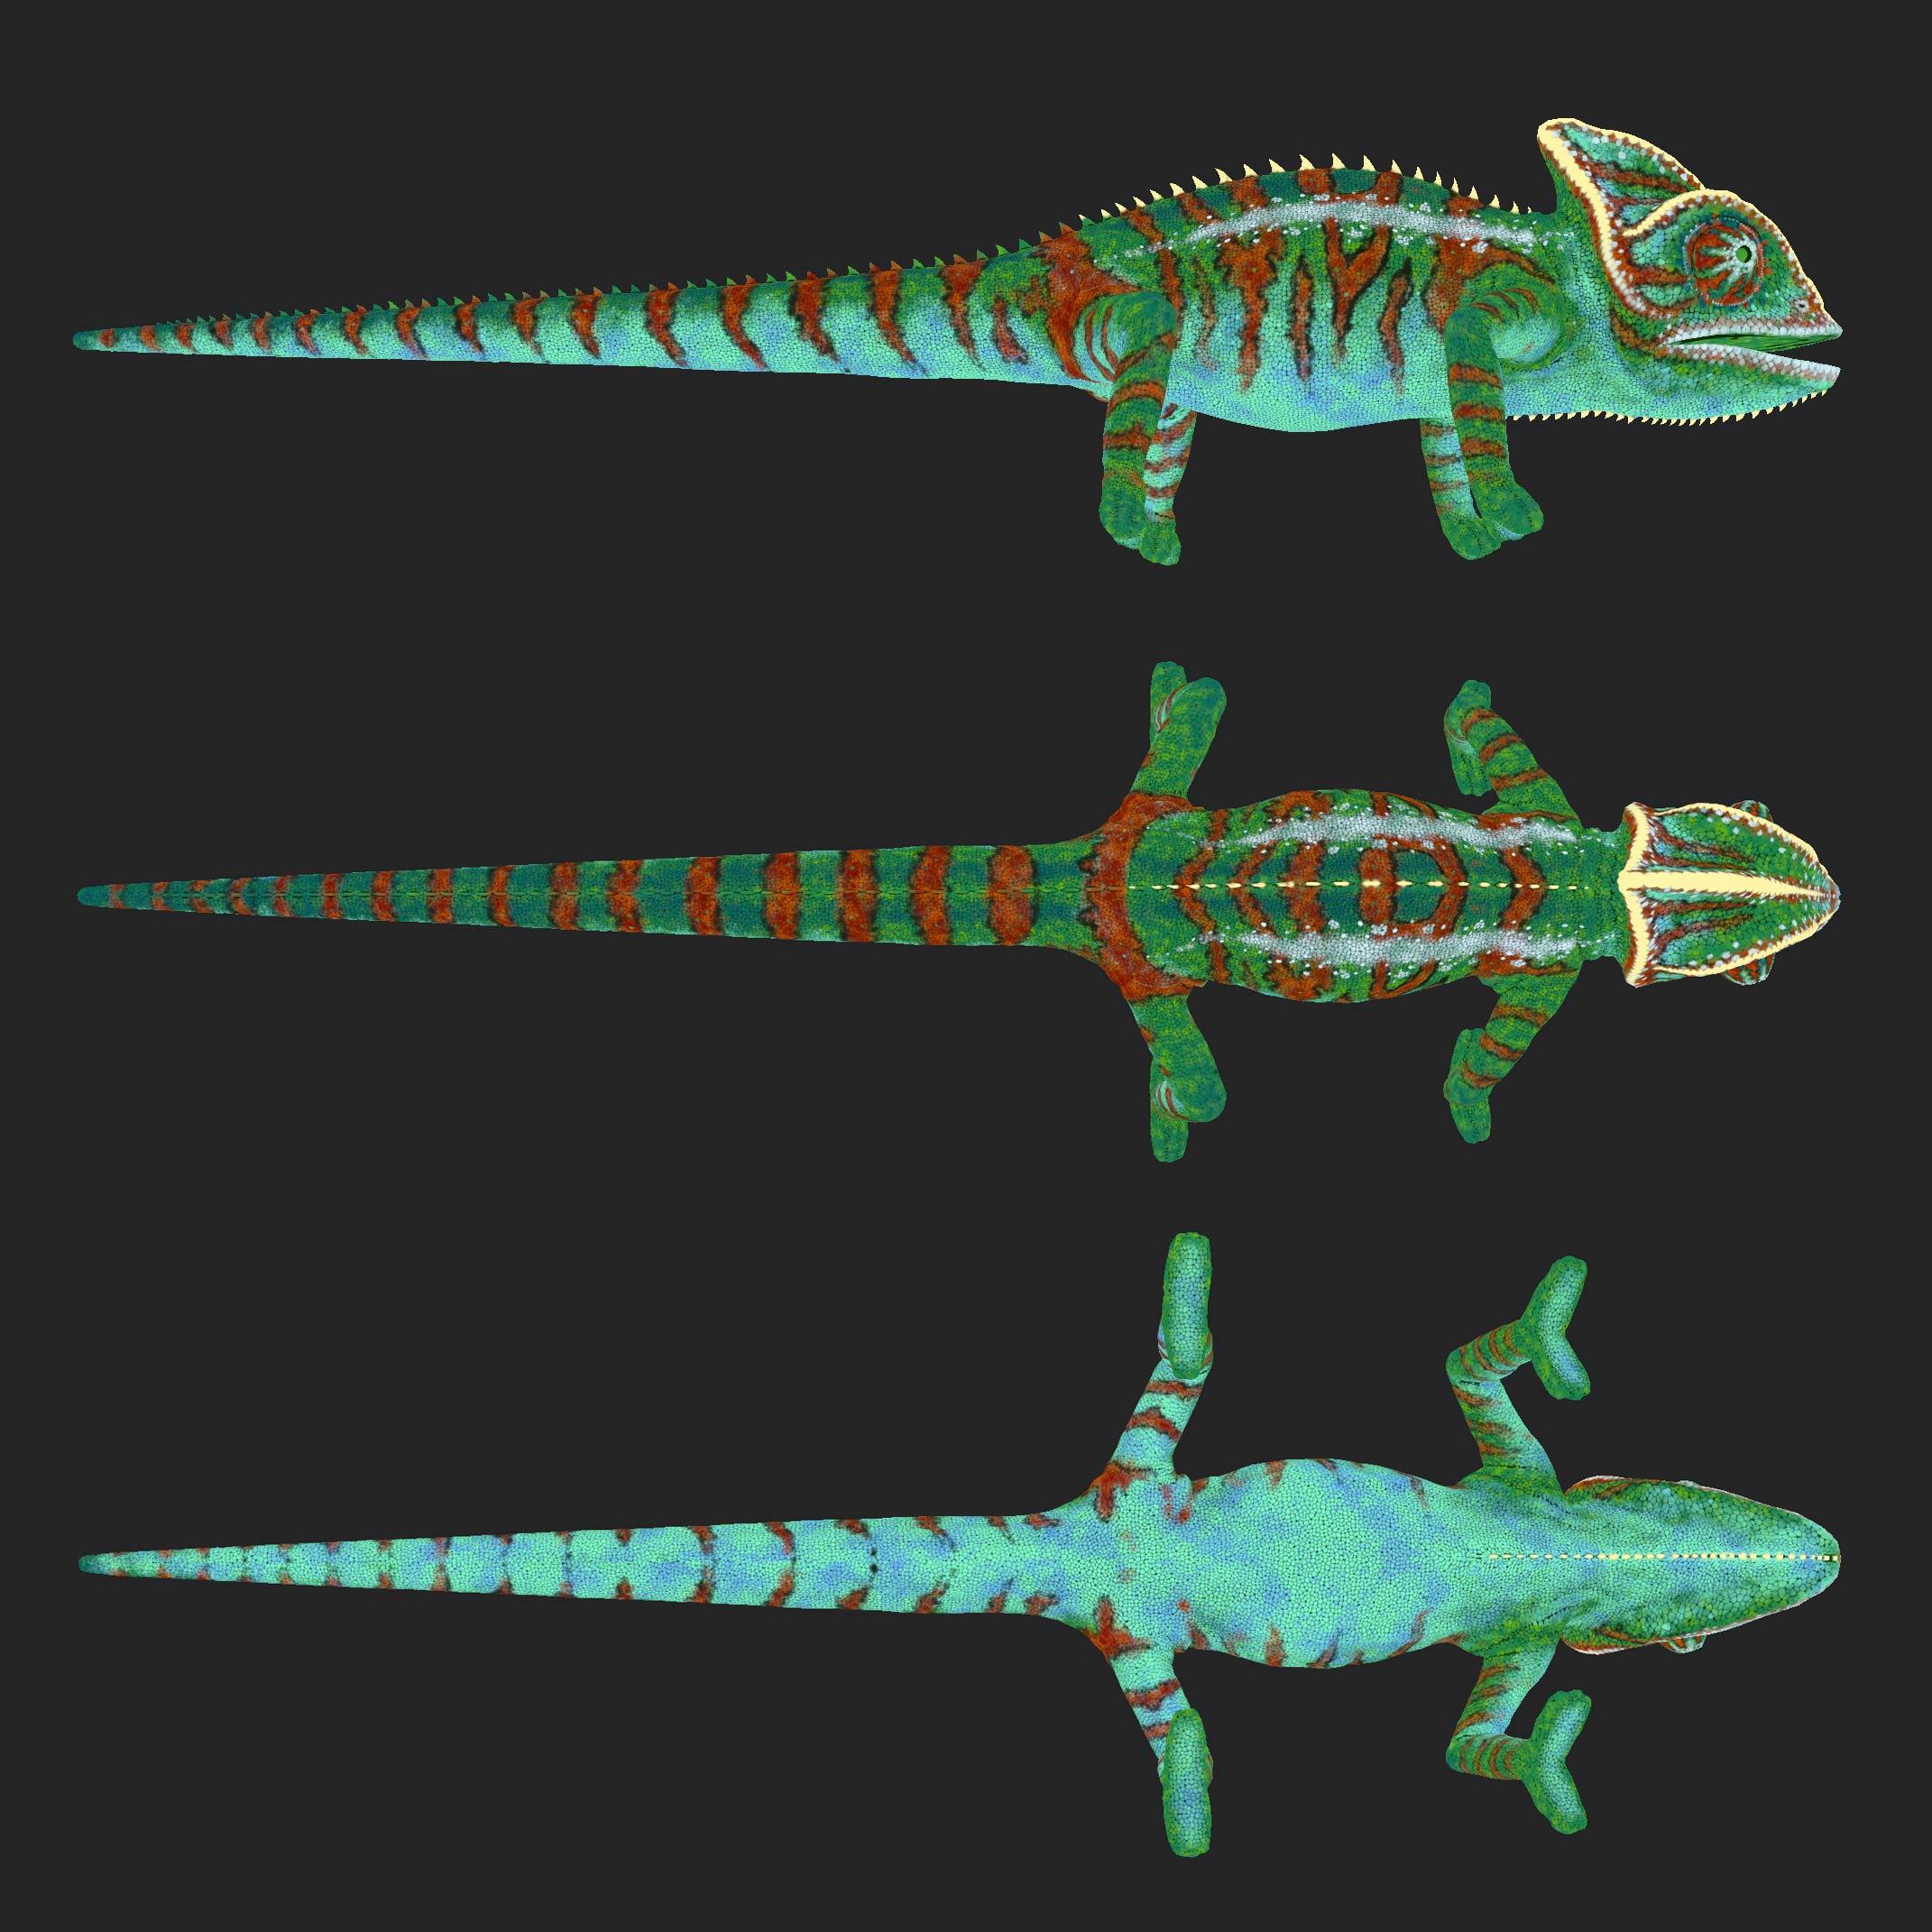 cg_chameleon_animals_textur_substance_painter Chameleon - Animation / TRACKING and MATCHMOVING / VFX